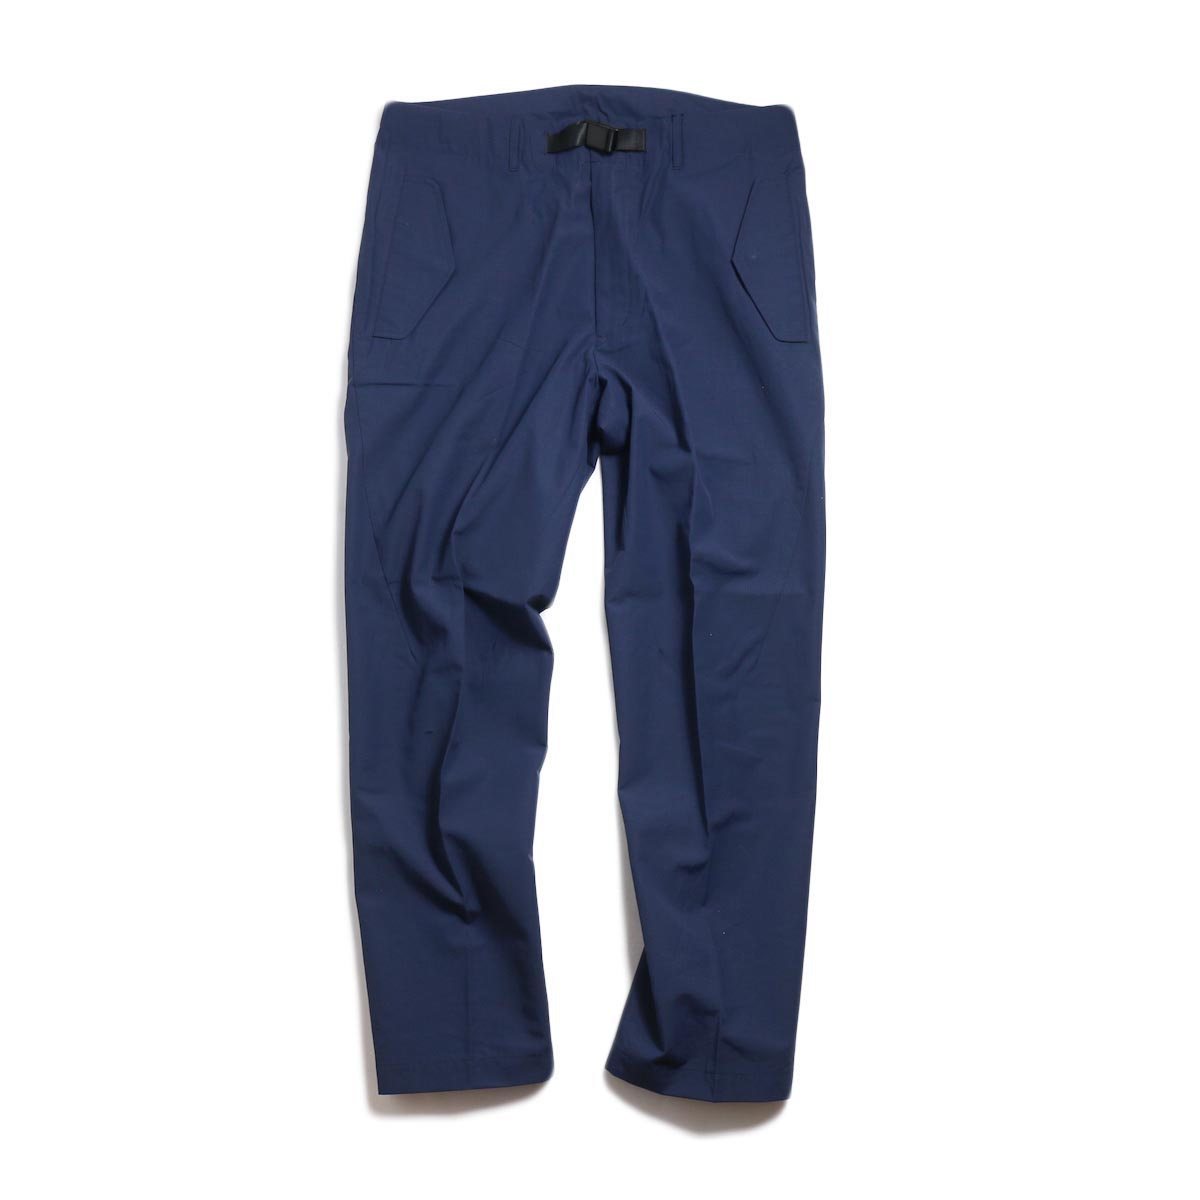 DESCENTE ddd / UNIFIT PANTS -NAVY